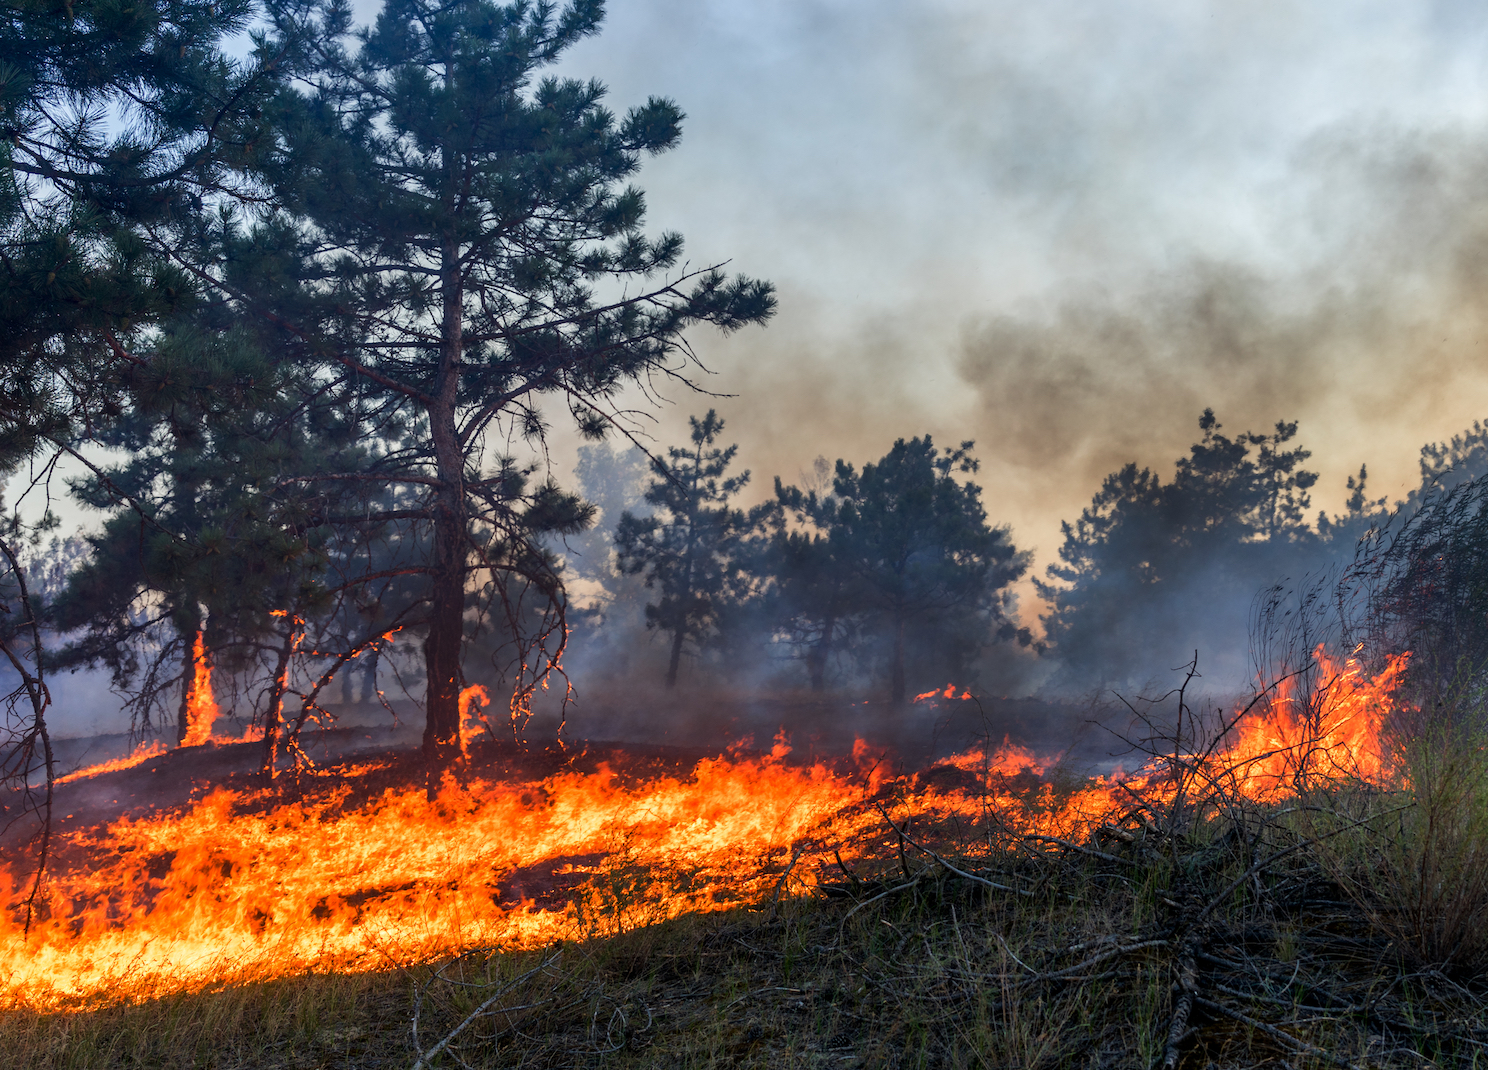 A new study suggests that management agencies are using an outdated method of calculating soil moisture for wildfire risk assessments.